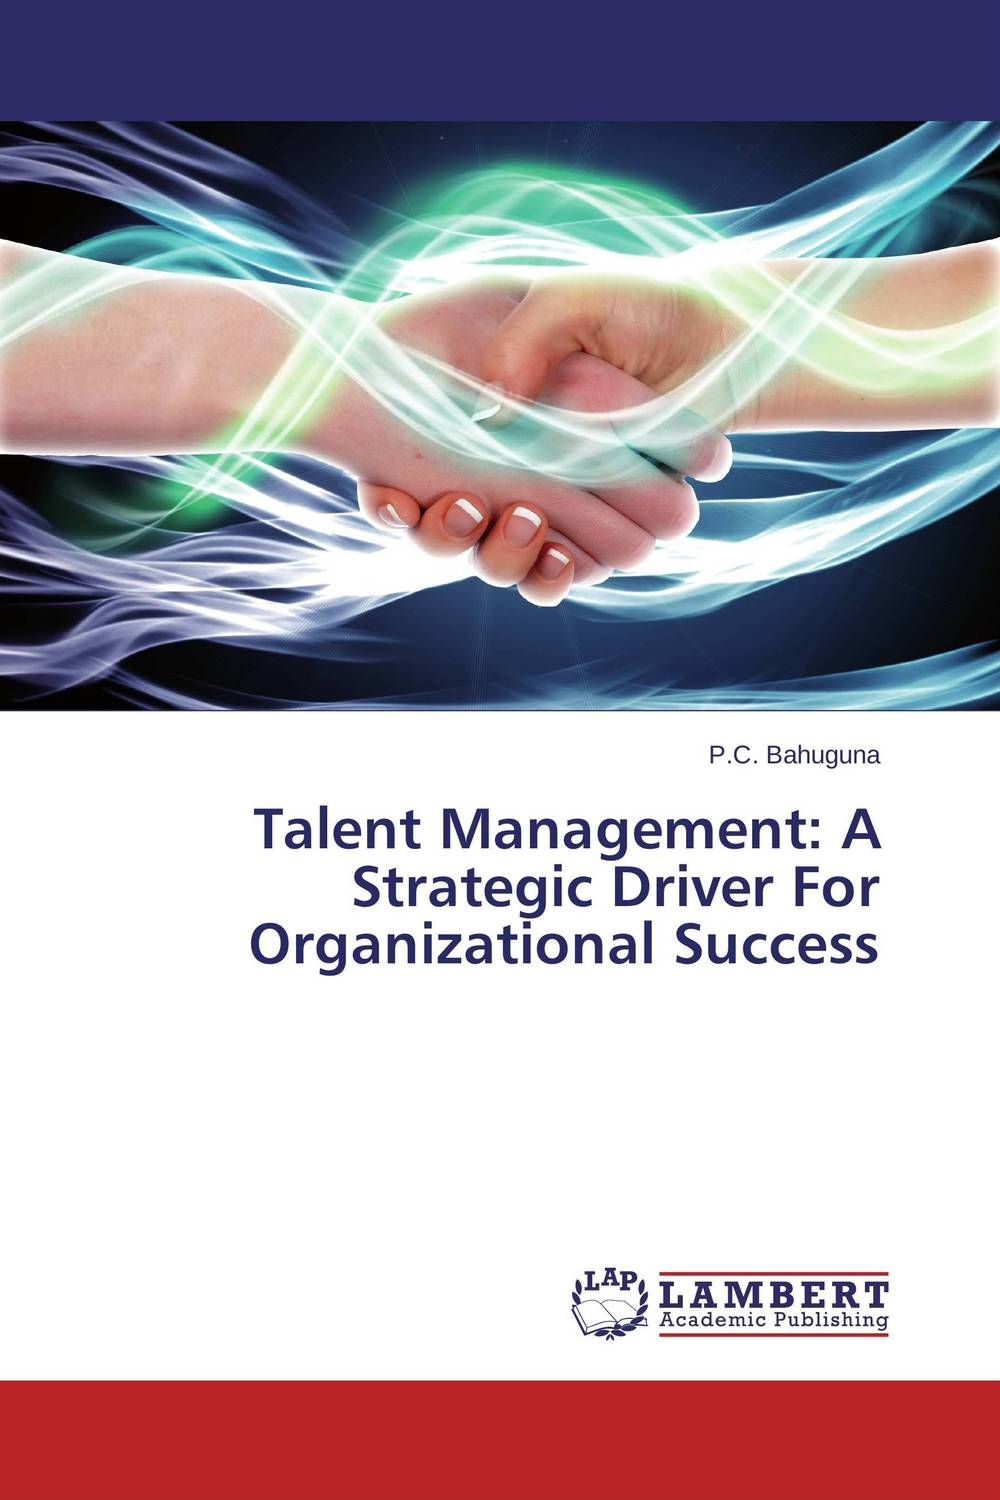 Talent Management: A Strategic Driver For Organizational Success